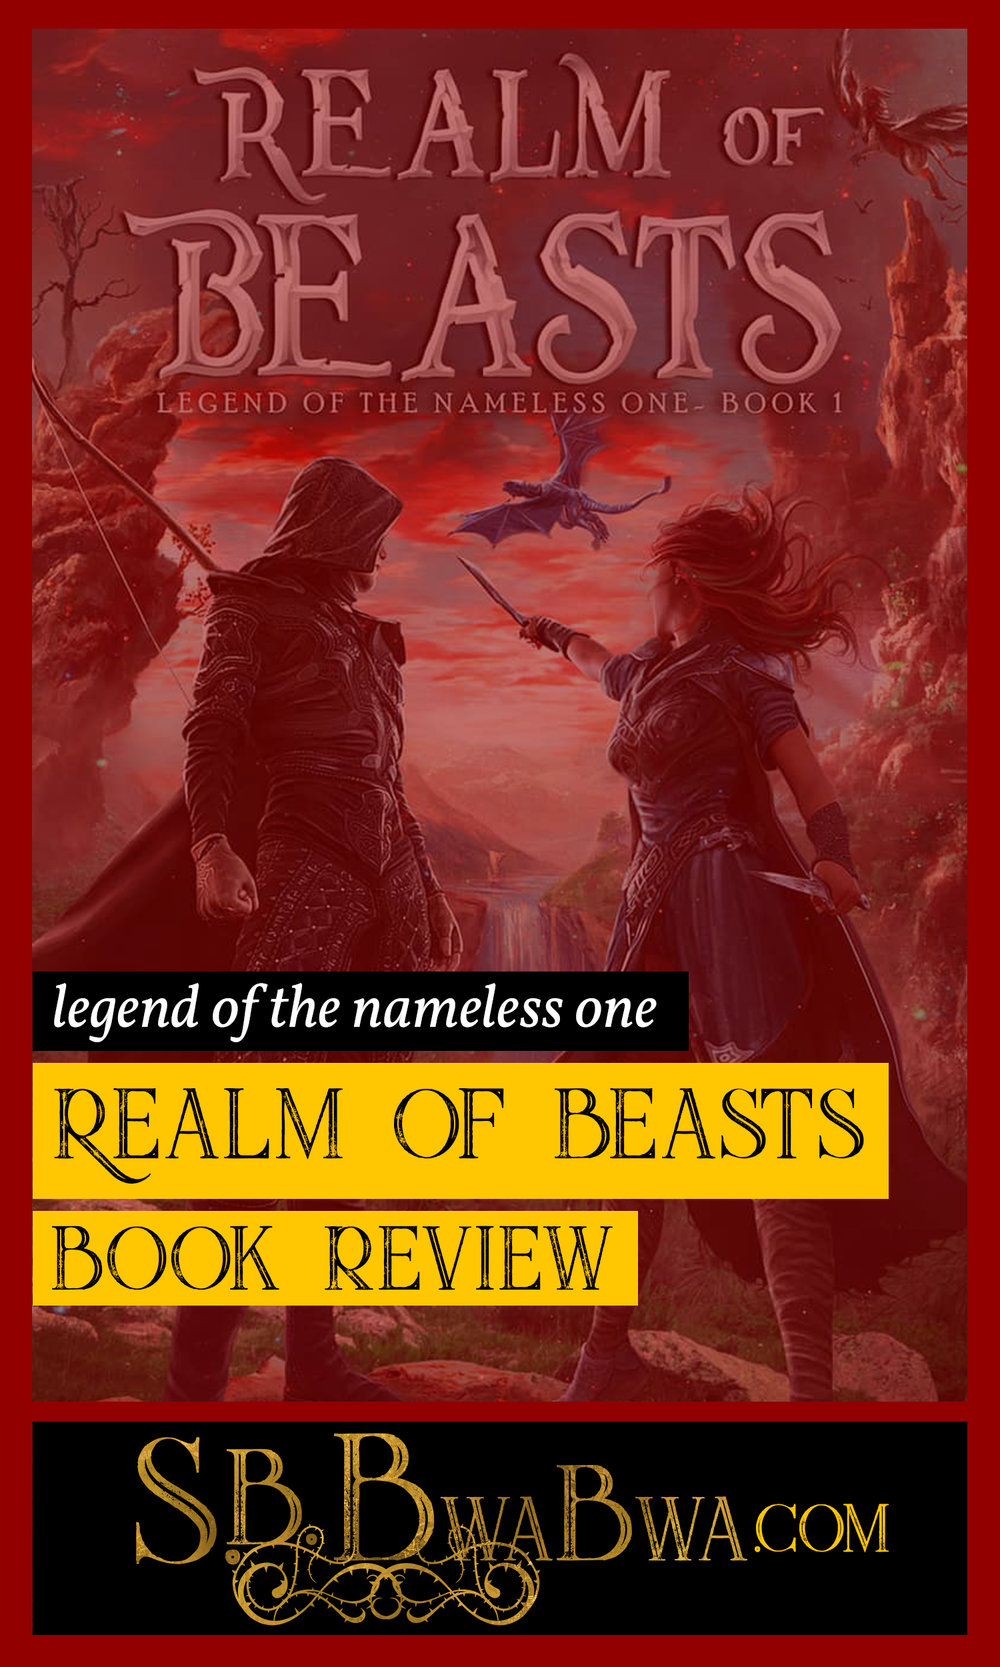 Read S.B. BwaBwa's review of the epic fantasy adventure: Realm of Beasts. Click through to read the article. www.sbbwabwa.com/blog